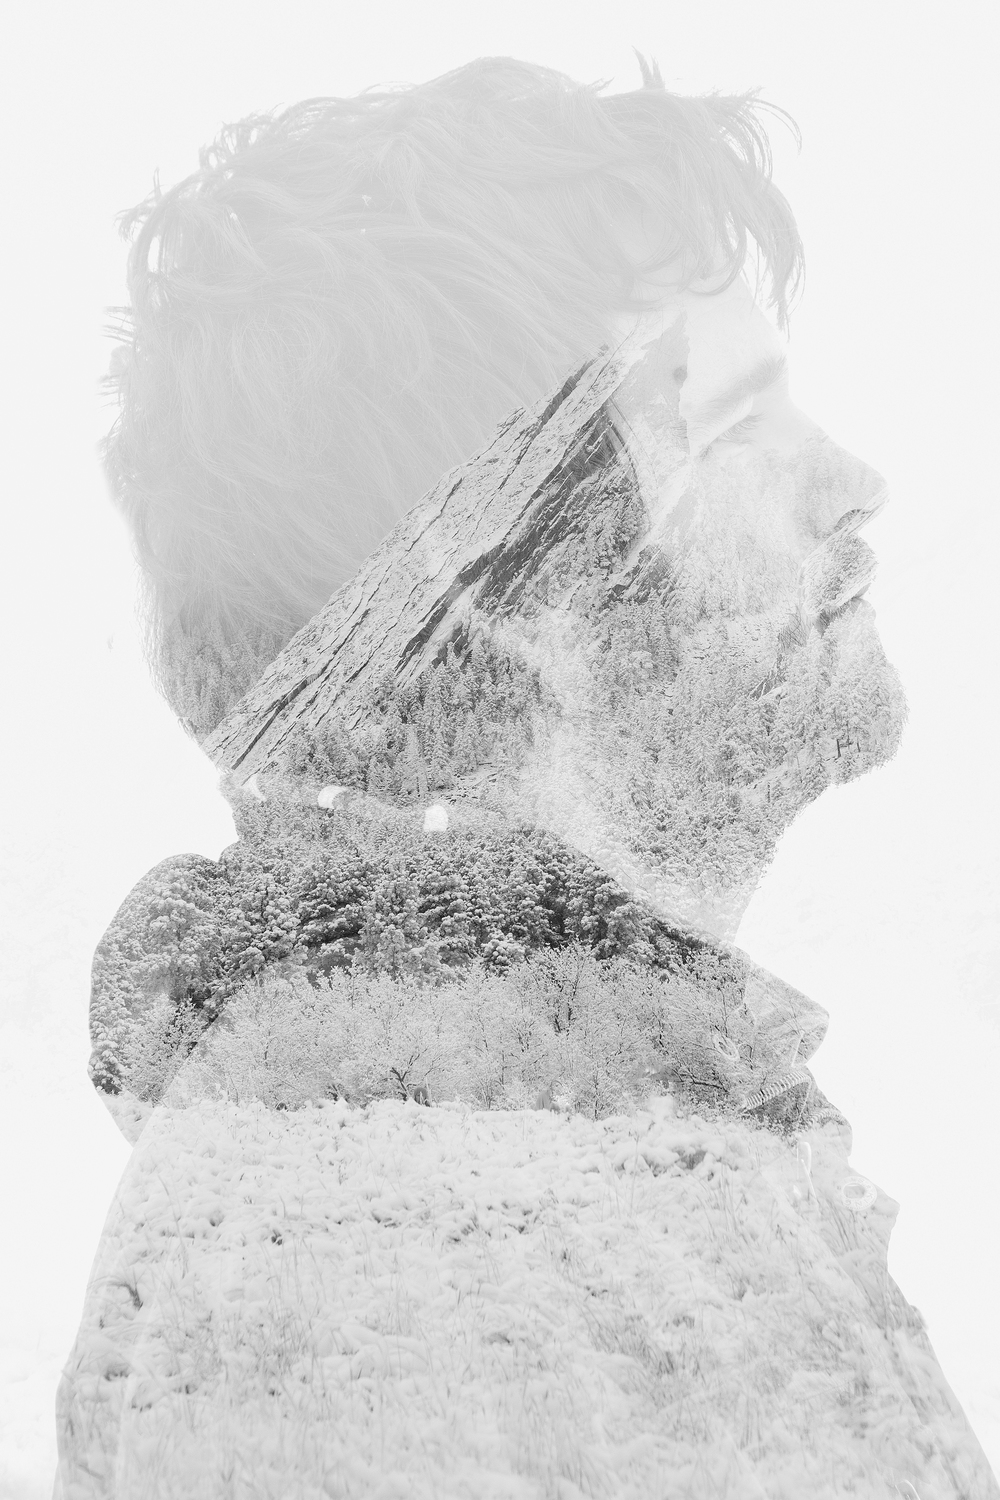 Joel Double Exposure Edit.jpg